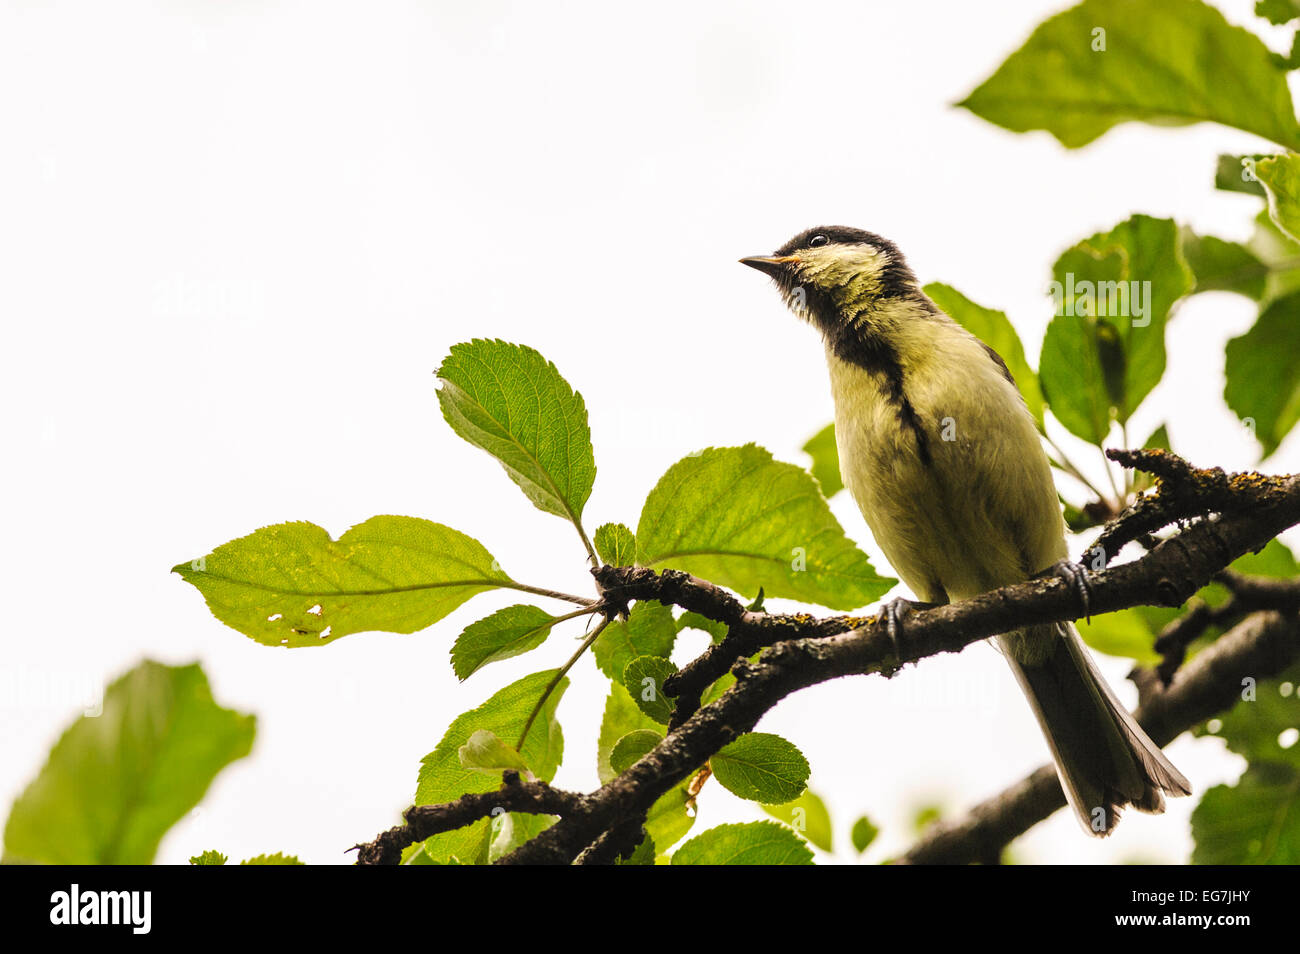 Female great tit (Parus Major) sitting on a branch, green leaves Stock Photo